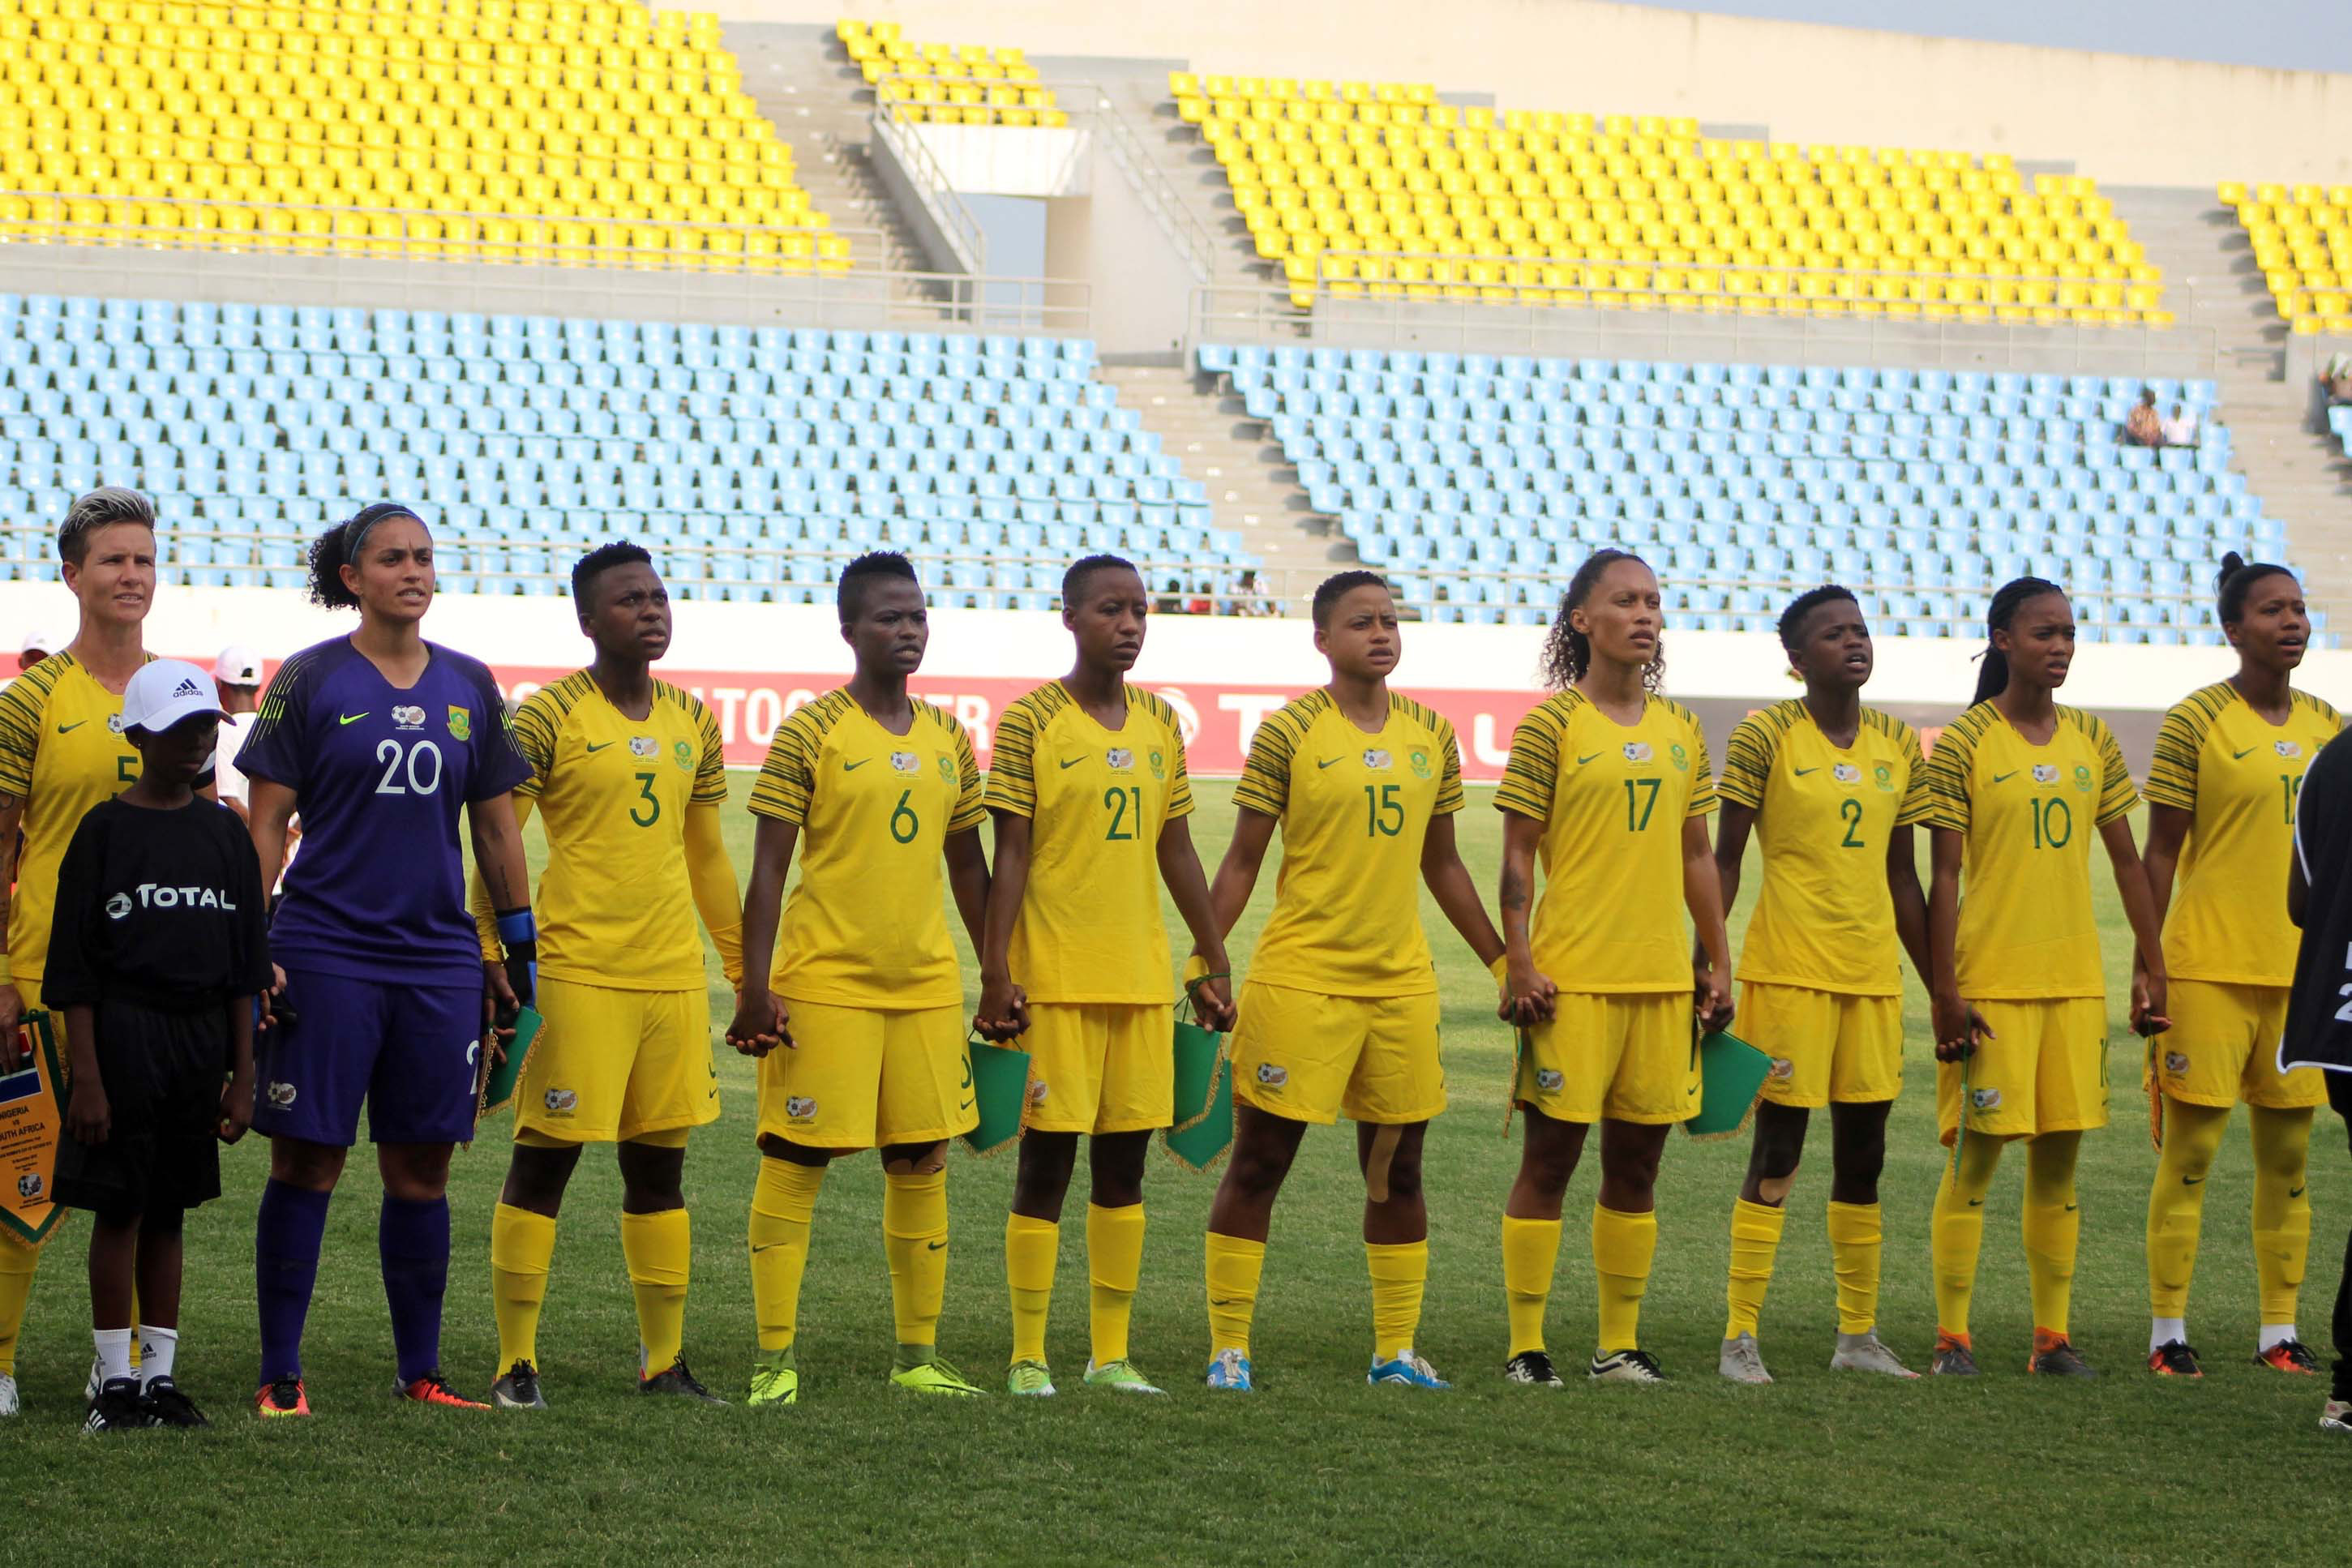 18 November 2018: A general view of Banyana during the 2018 TOTAL Africa Women's Cup of Nations match between South Africa and Nigeria at the Cape Coast Stadium in Cape Coast, Ghana. (Photo by Segun Ogunfeyitimi/Gallo Images)